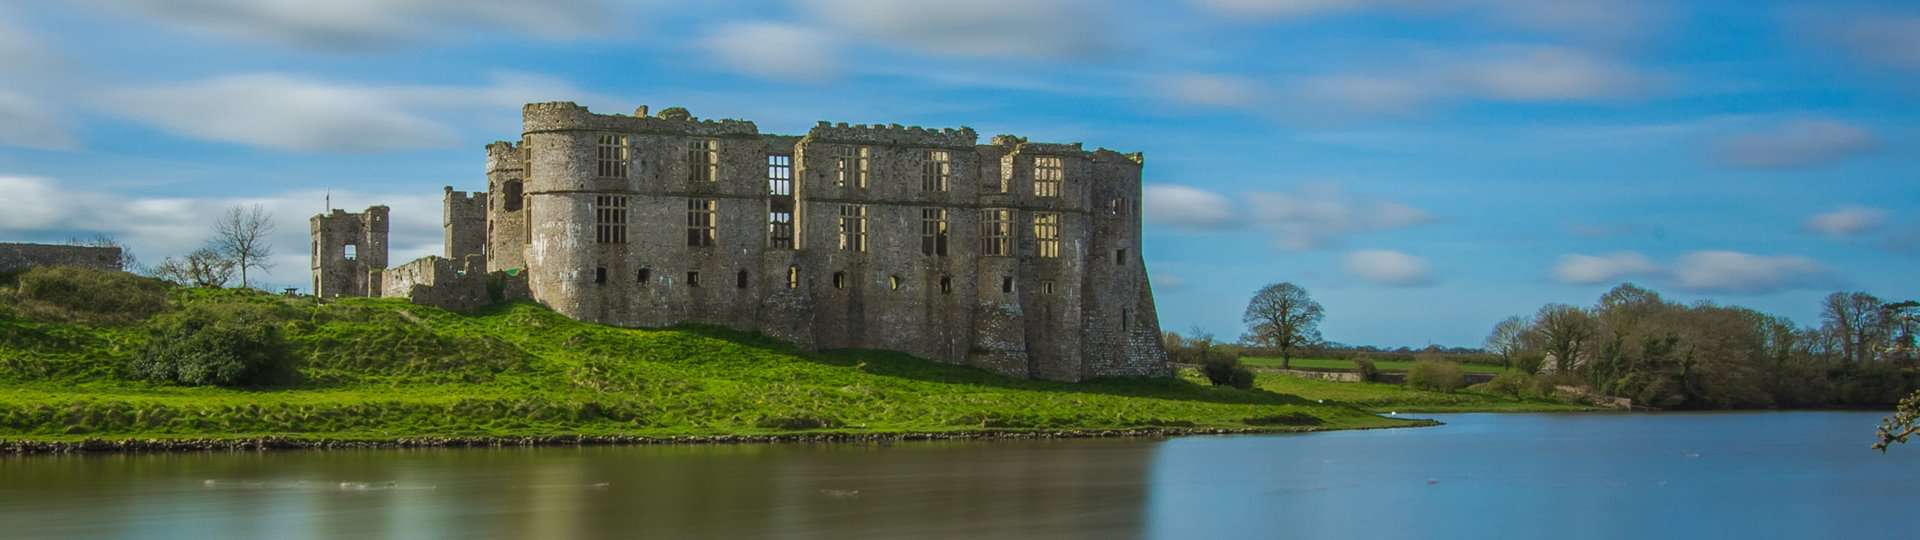 Carew Castle on the banks of the Carew River.